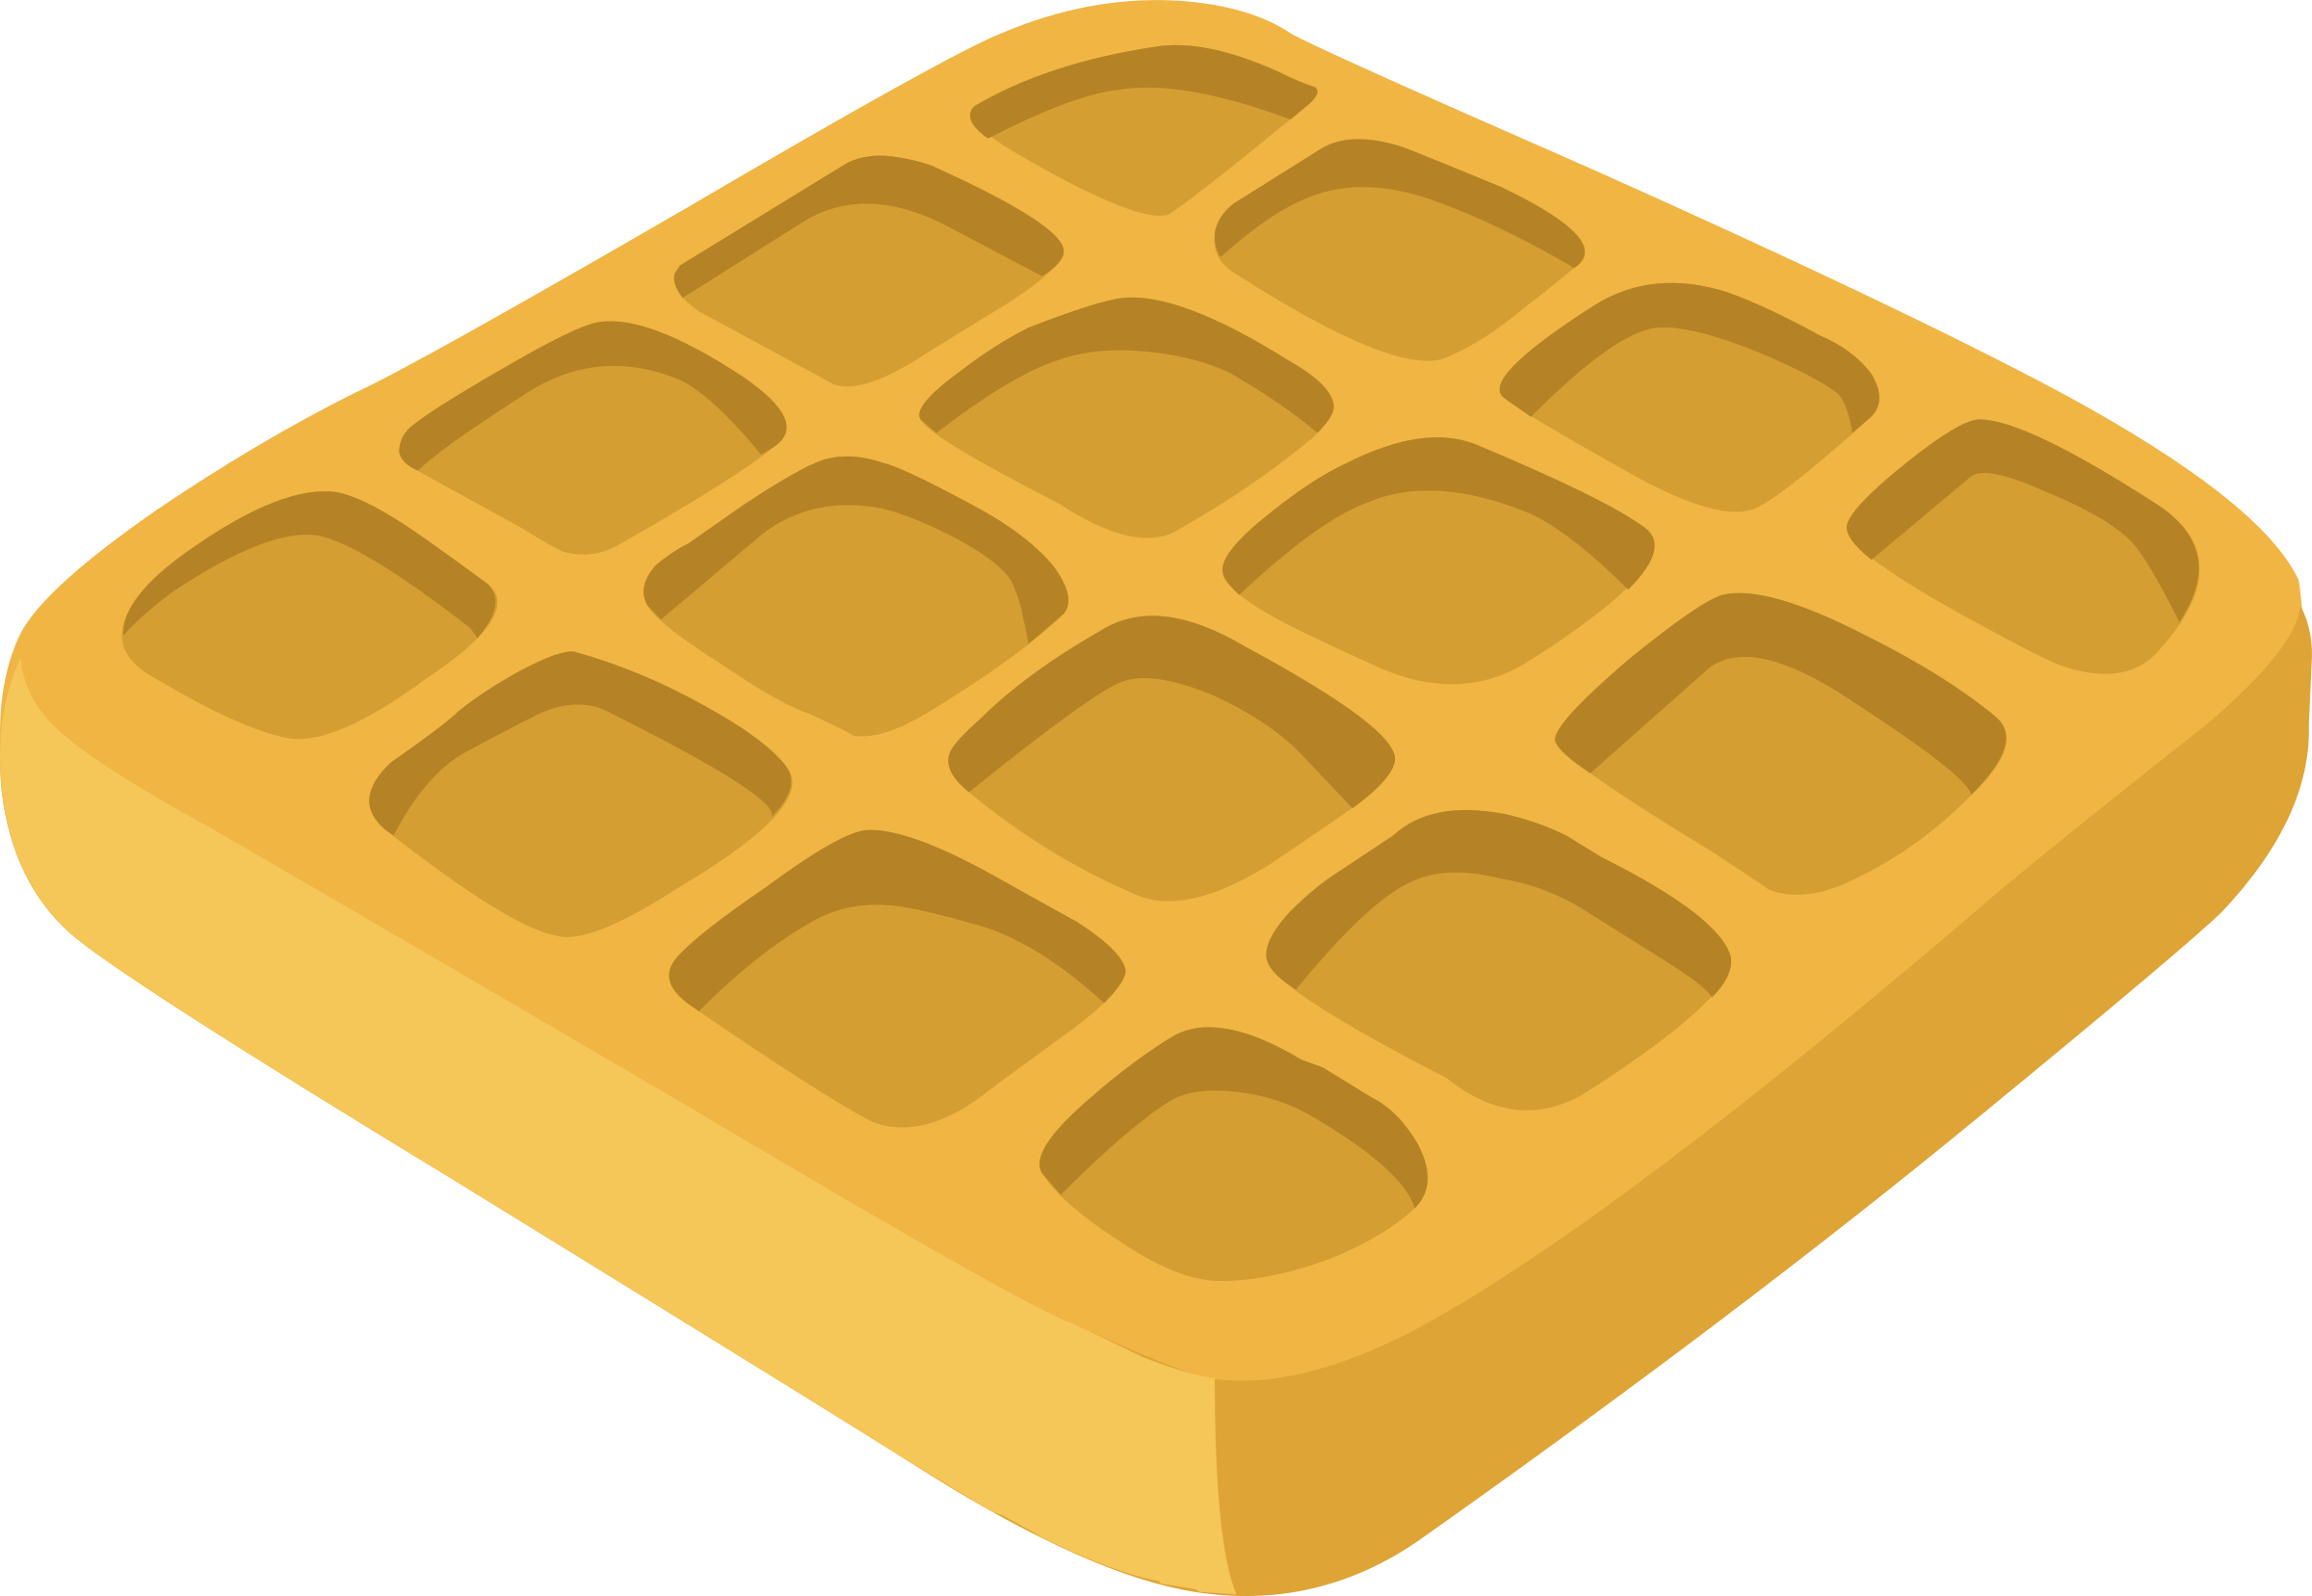 Waffle clipart vector. Food waffles by glitch